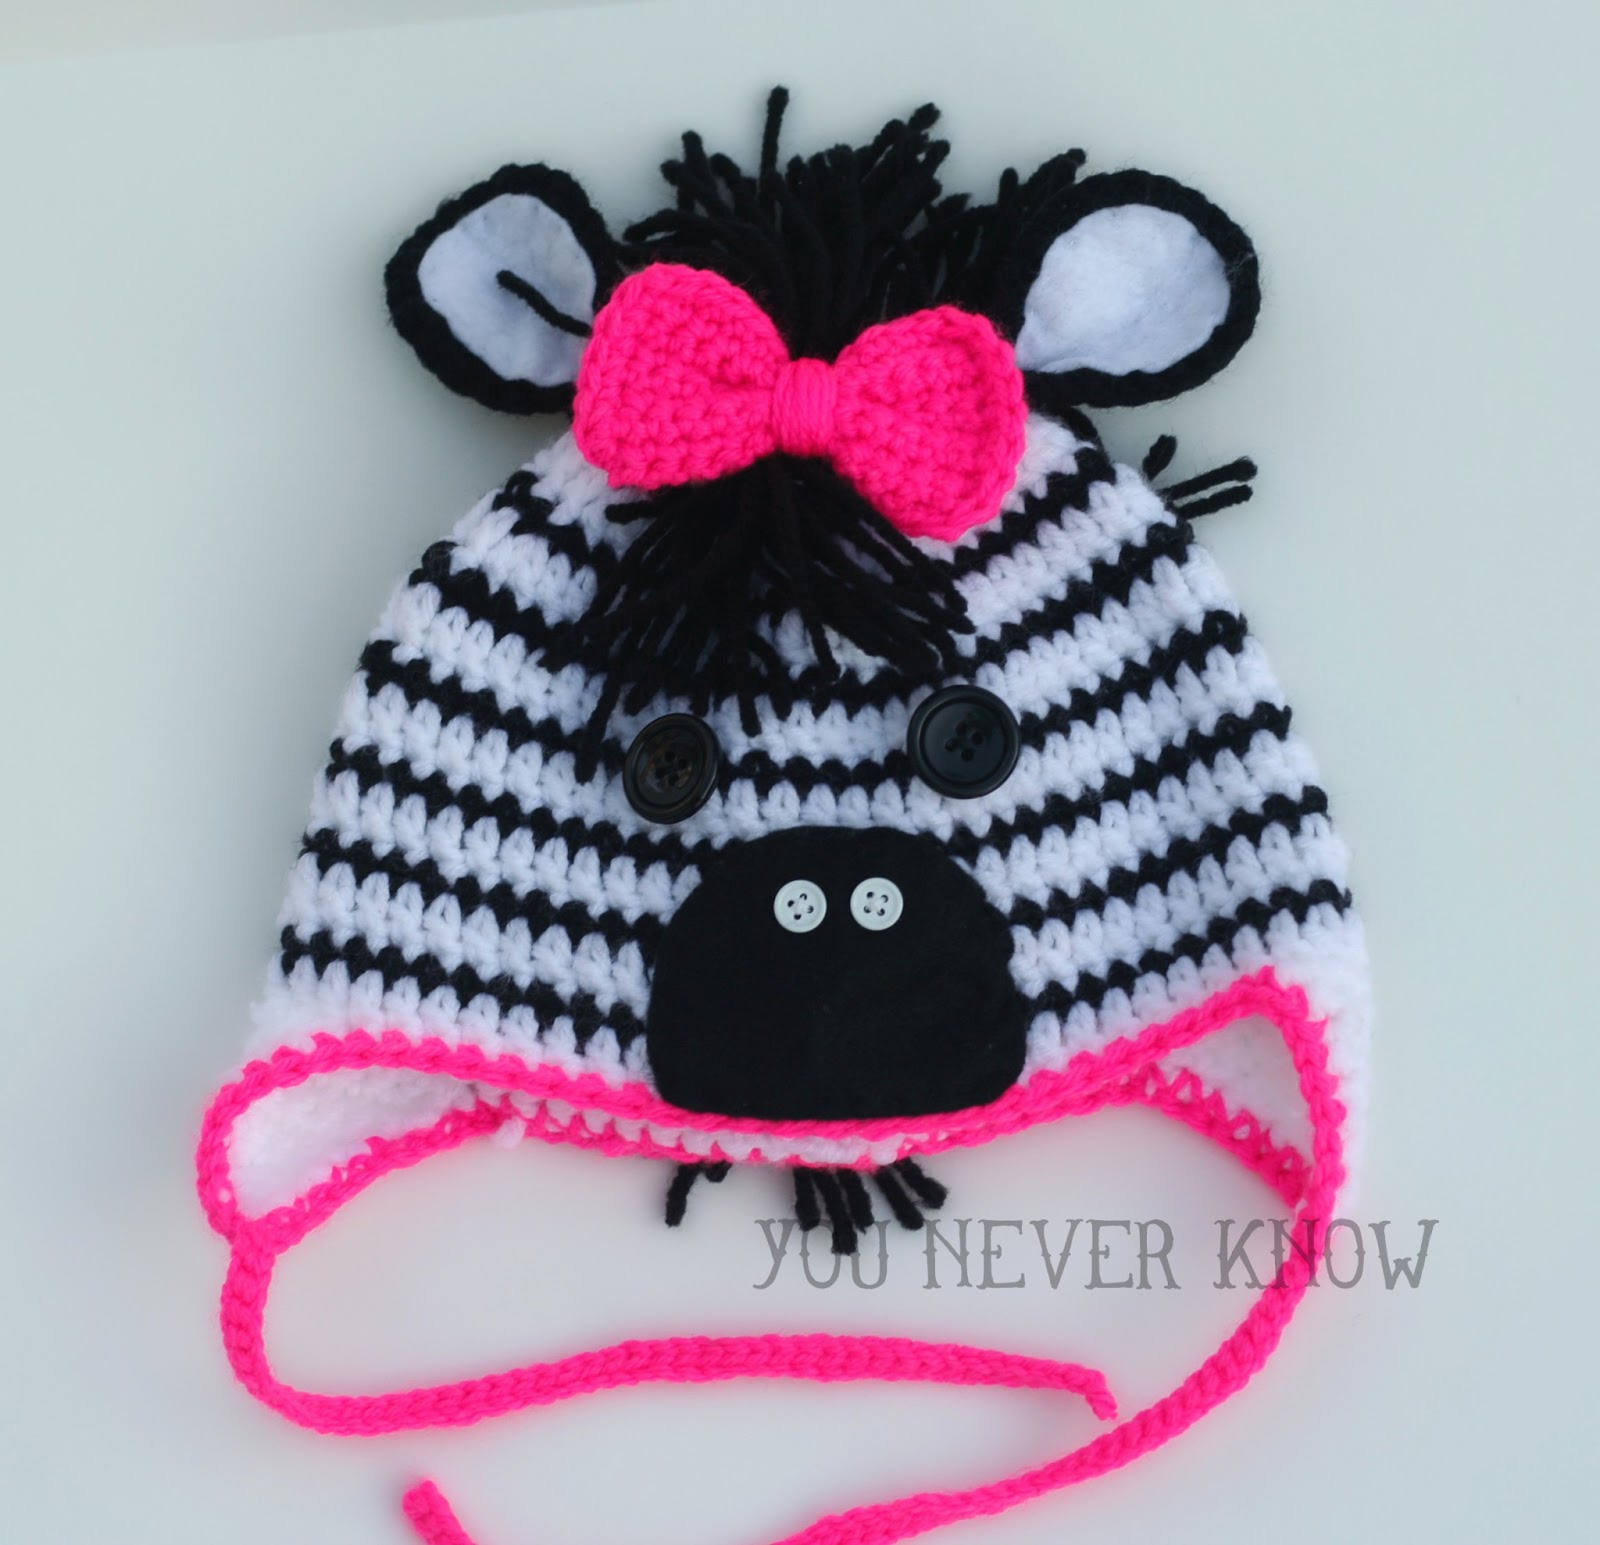 Crochet Pattern Zebra Hat : You Never Know by Andrea VanHooser Womack: Claras Zebra Hat